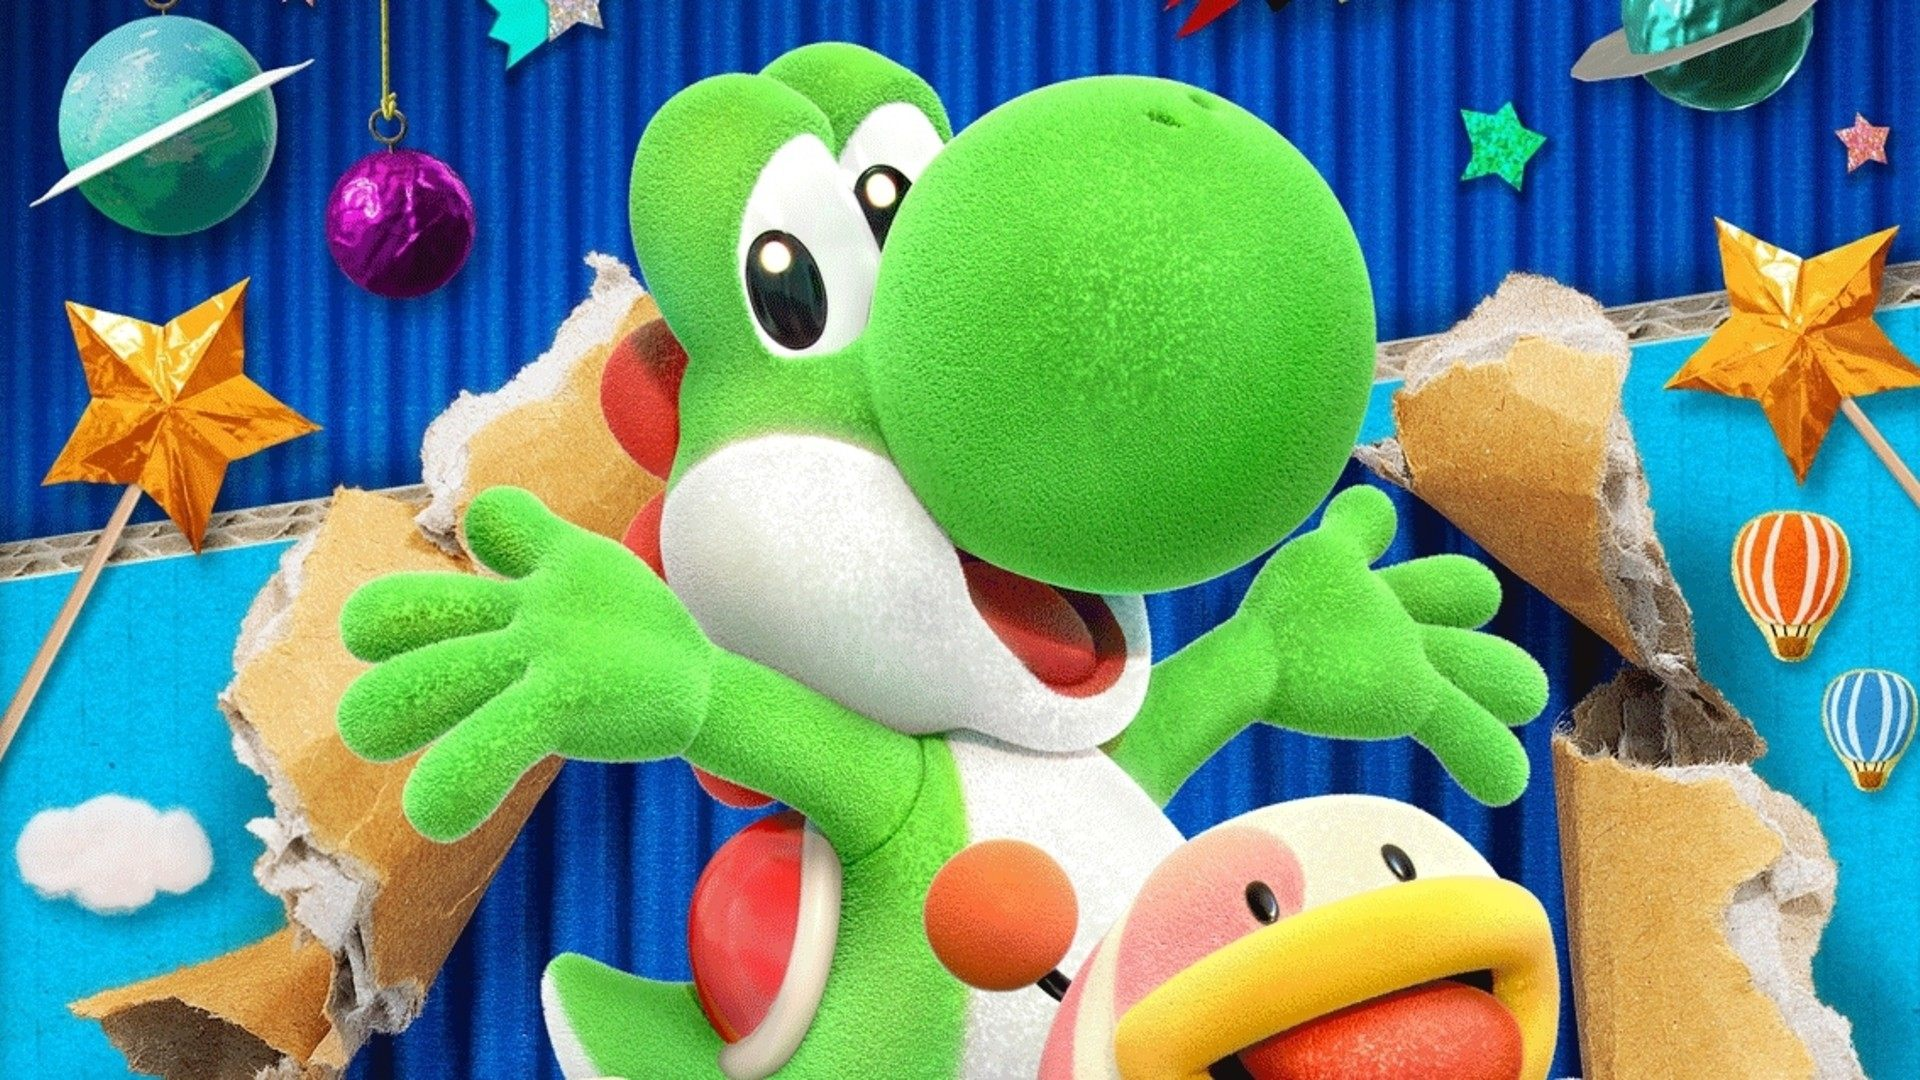 Yoshi's Crafted World Nintendo